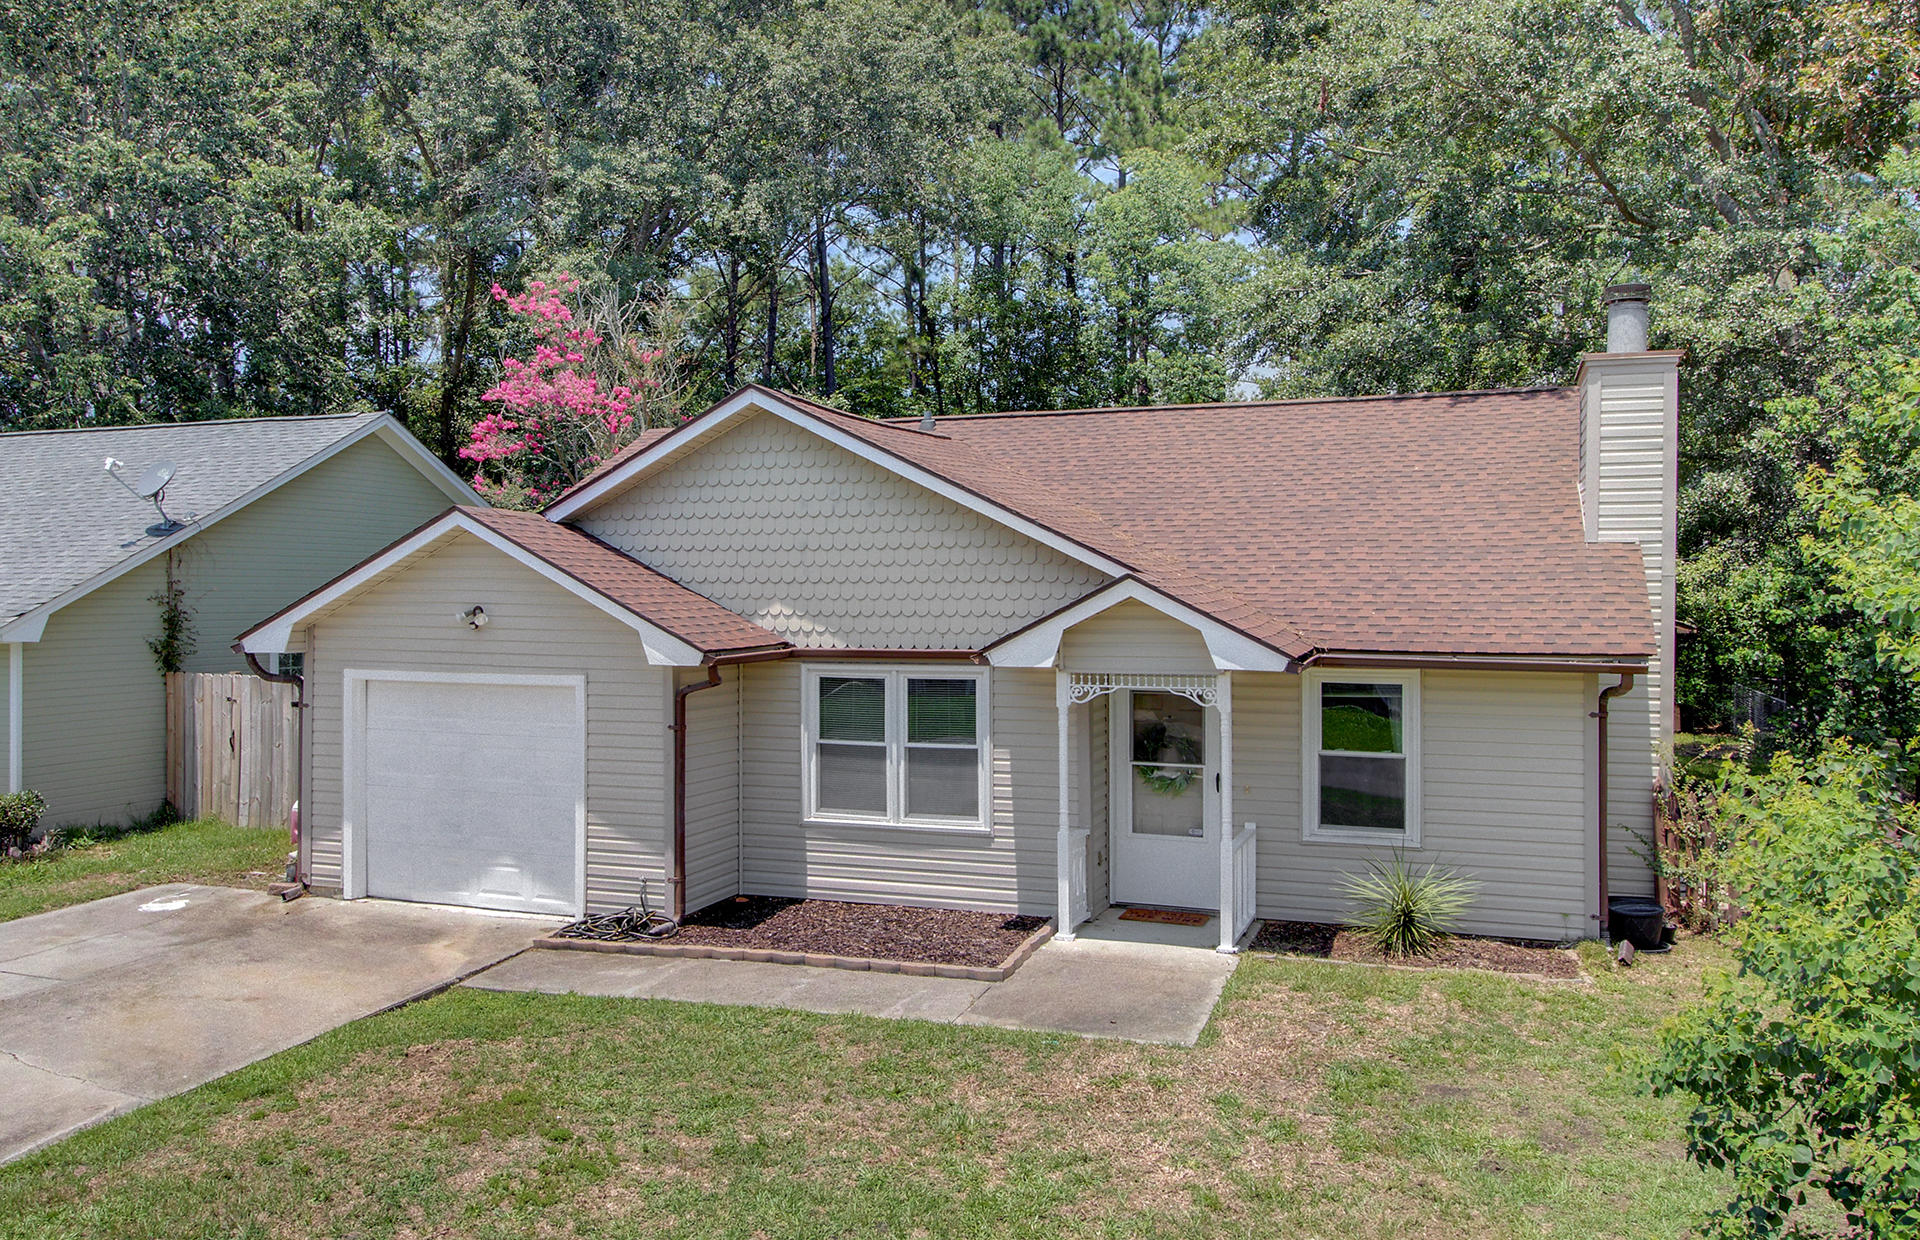 121 Tennyson Way Summerville, Sc 29486